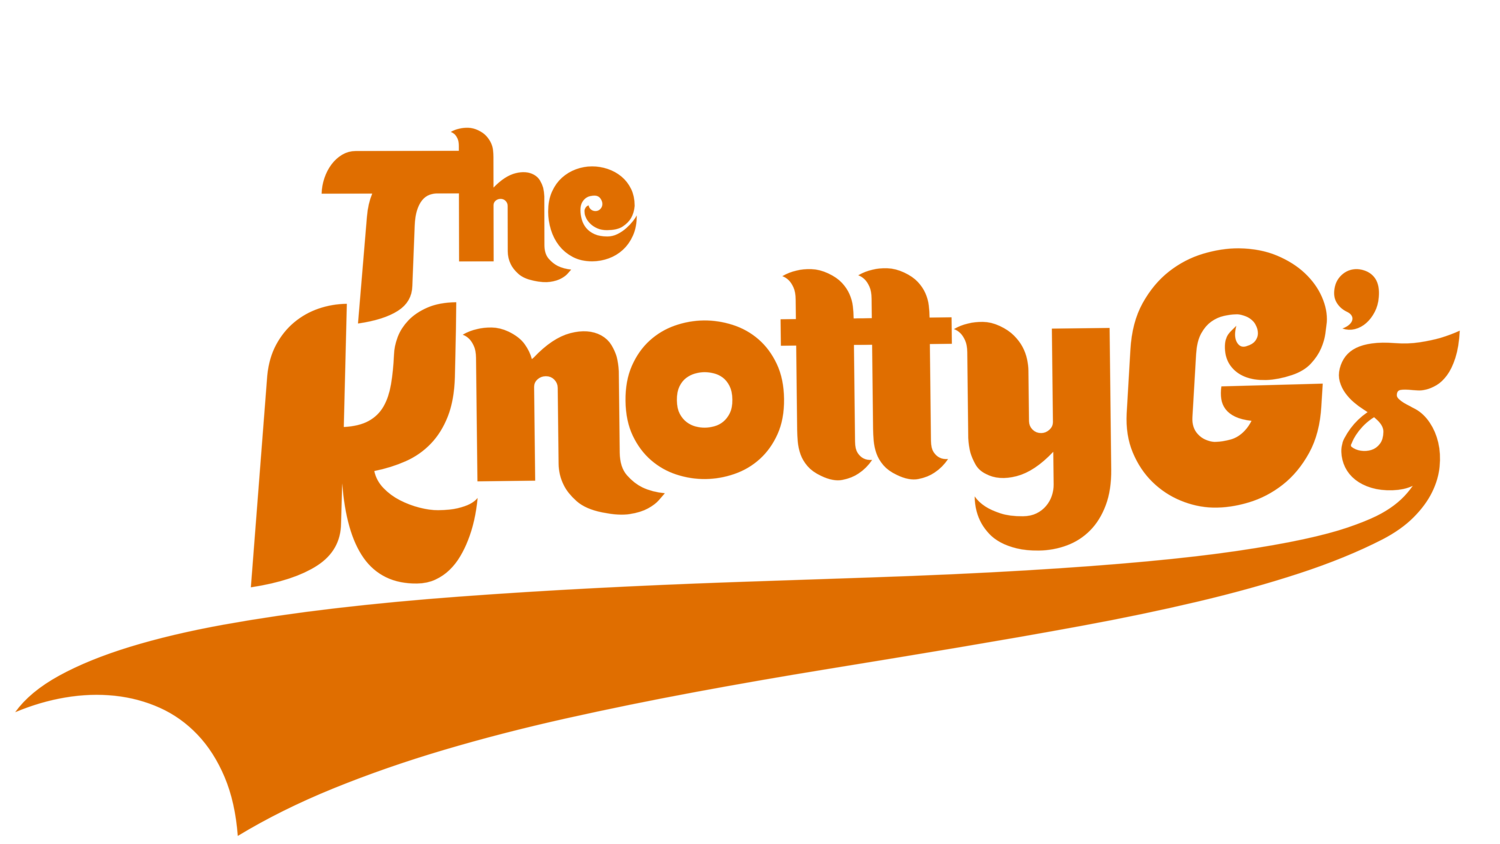 The Knotty Gs